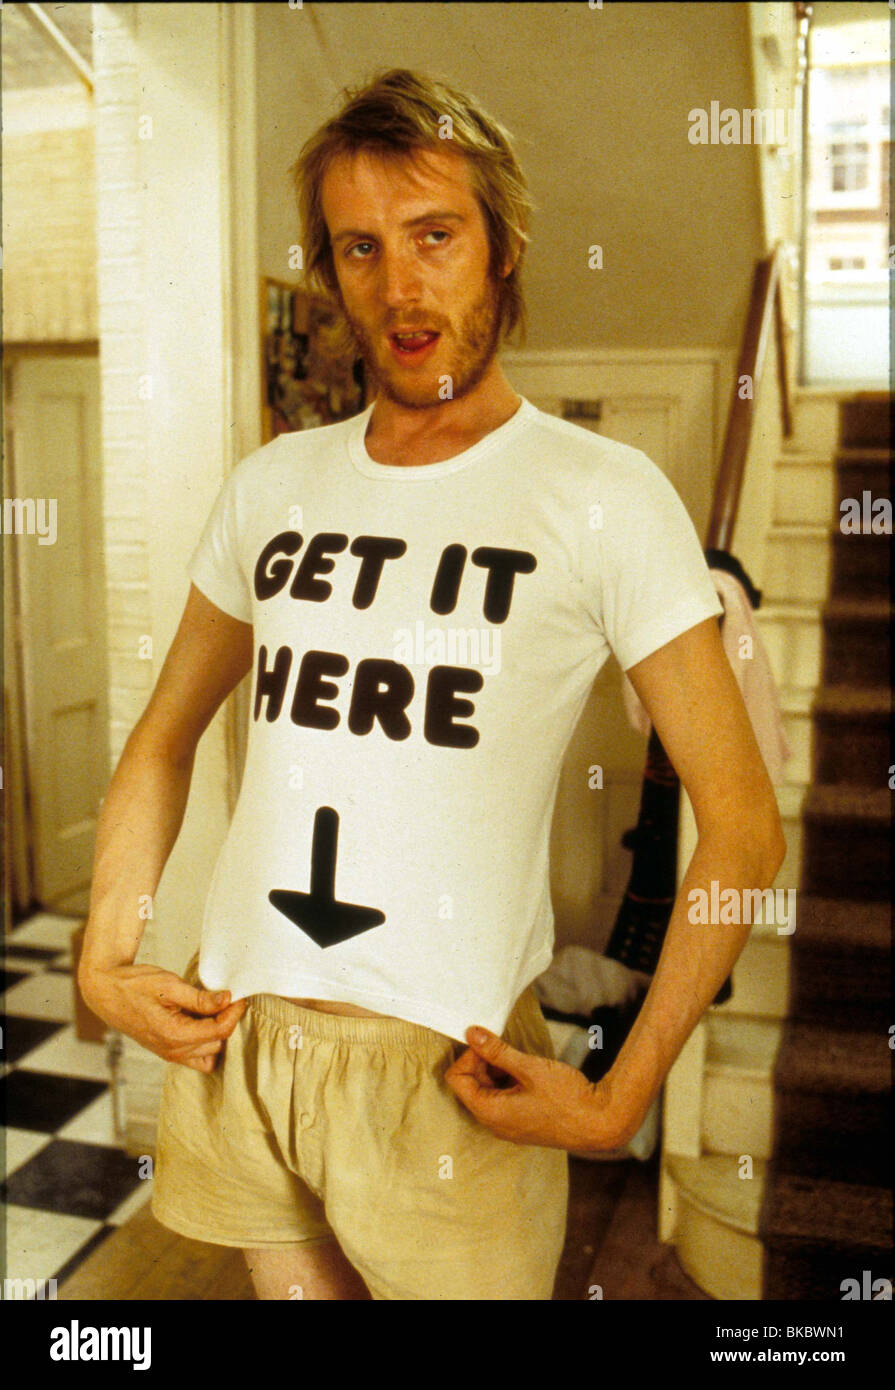 NOTTING HILL RHYS IFANS NGHI 165 - Stock Image